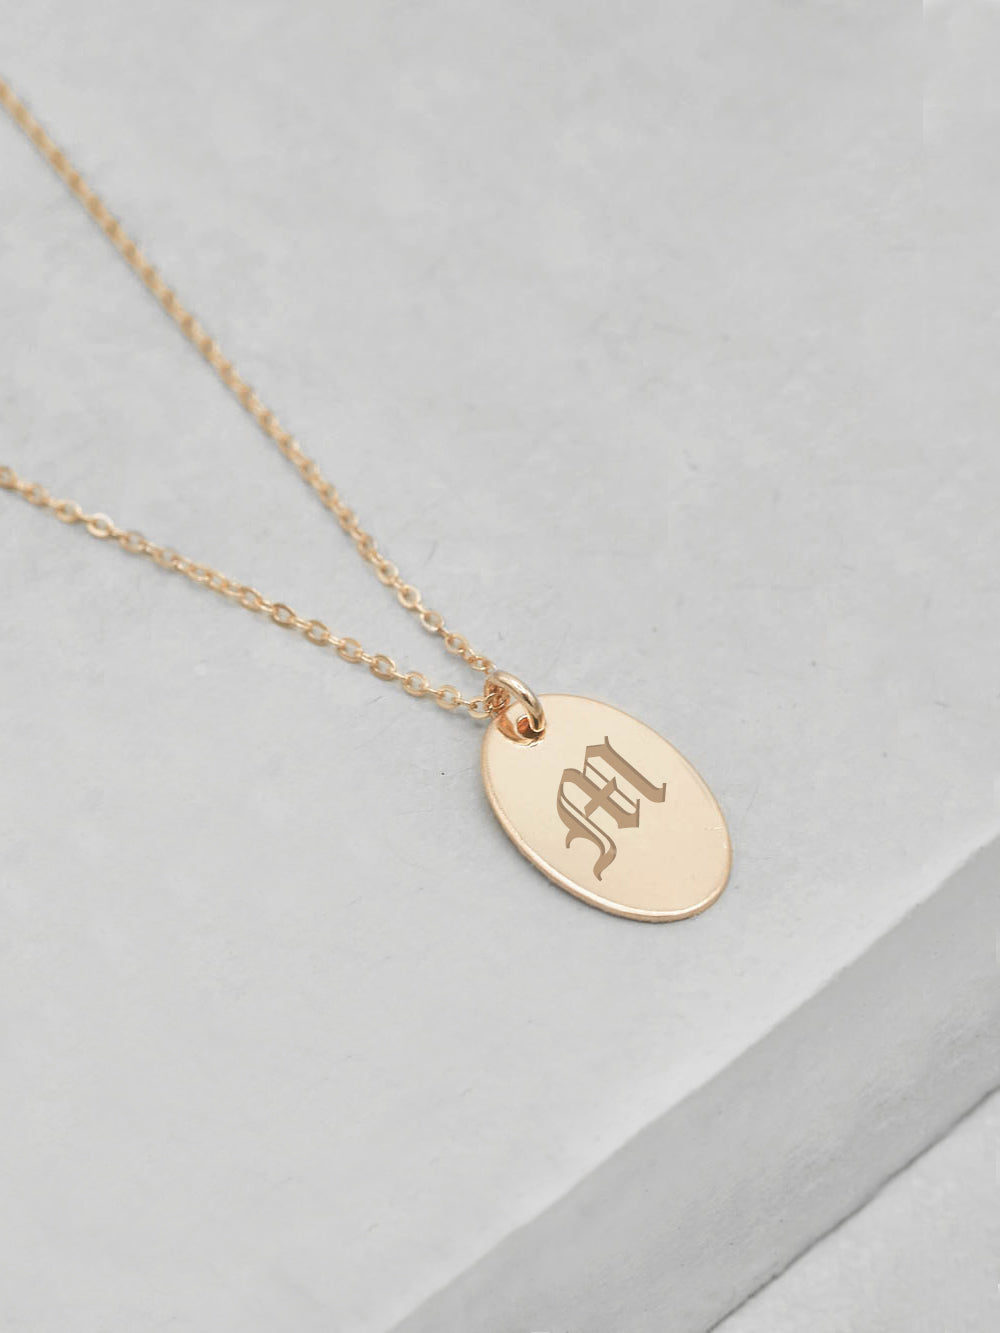 Custom Oval Coin Gold Necklace by The Faint Hearted Jewelry